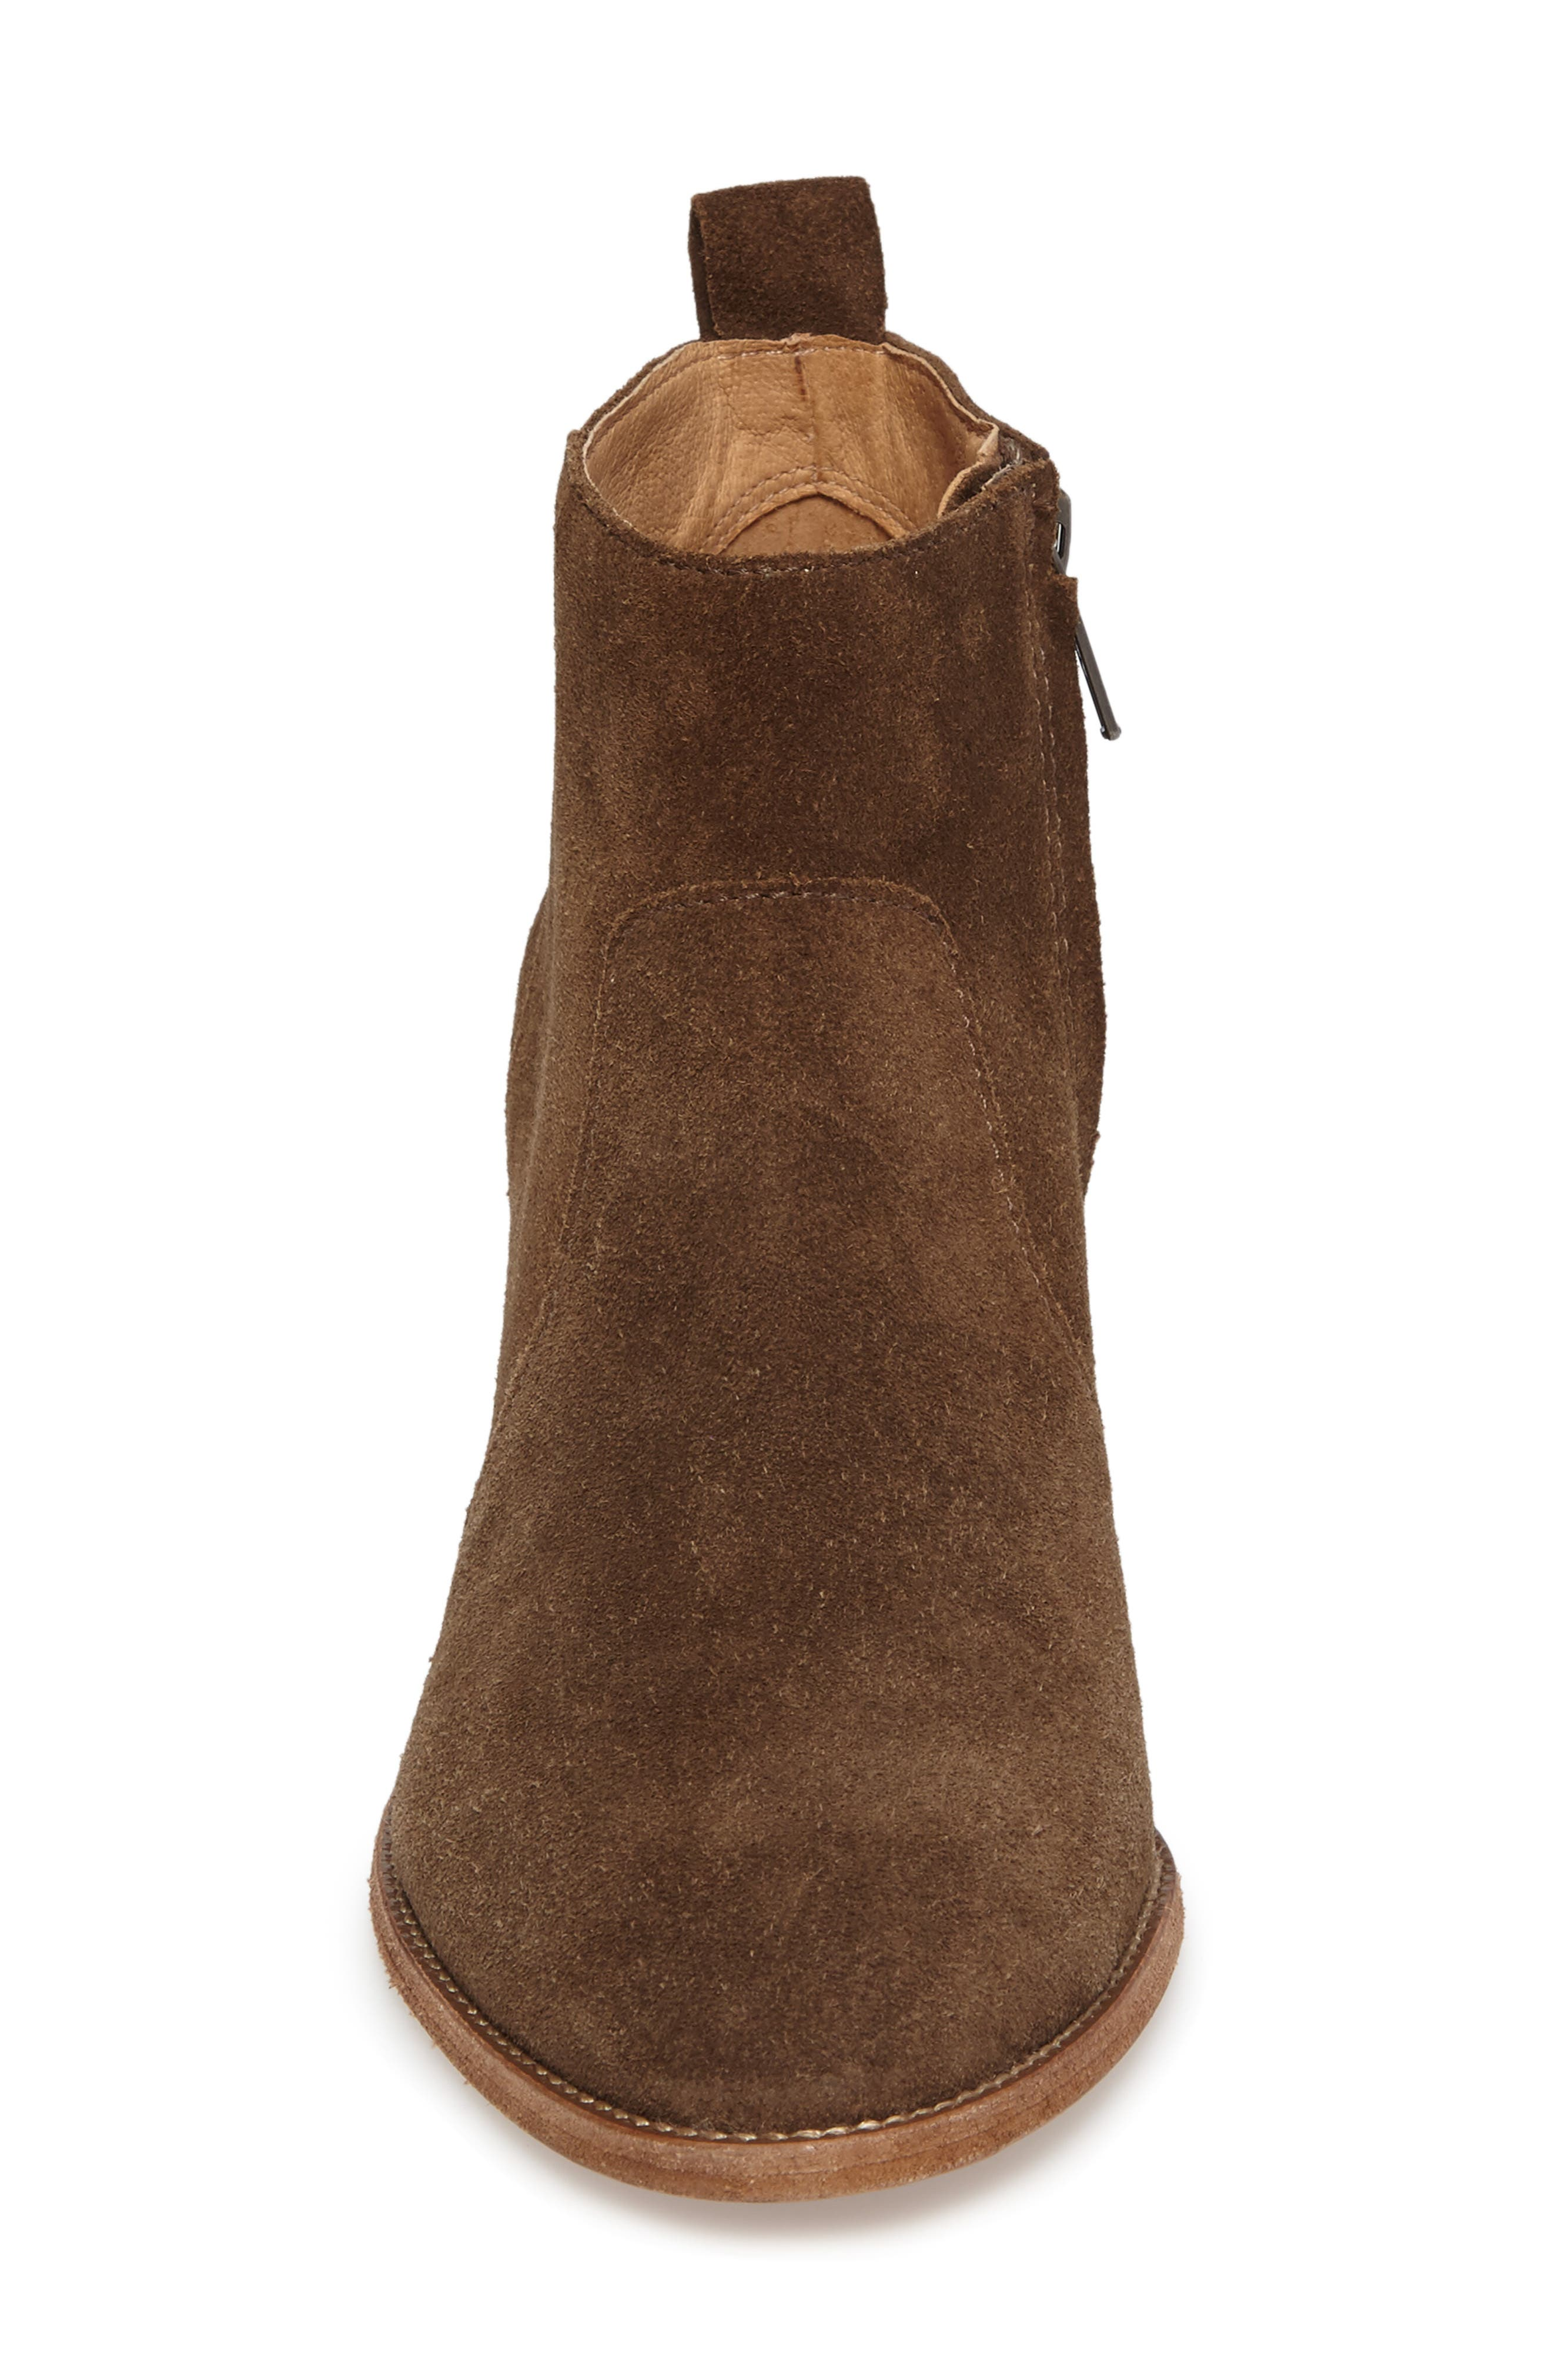 Brenner Bootie,                             Alternate thumbnail 4, color,                             Mink Suede